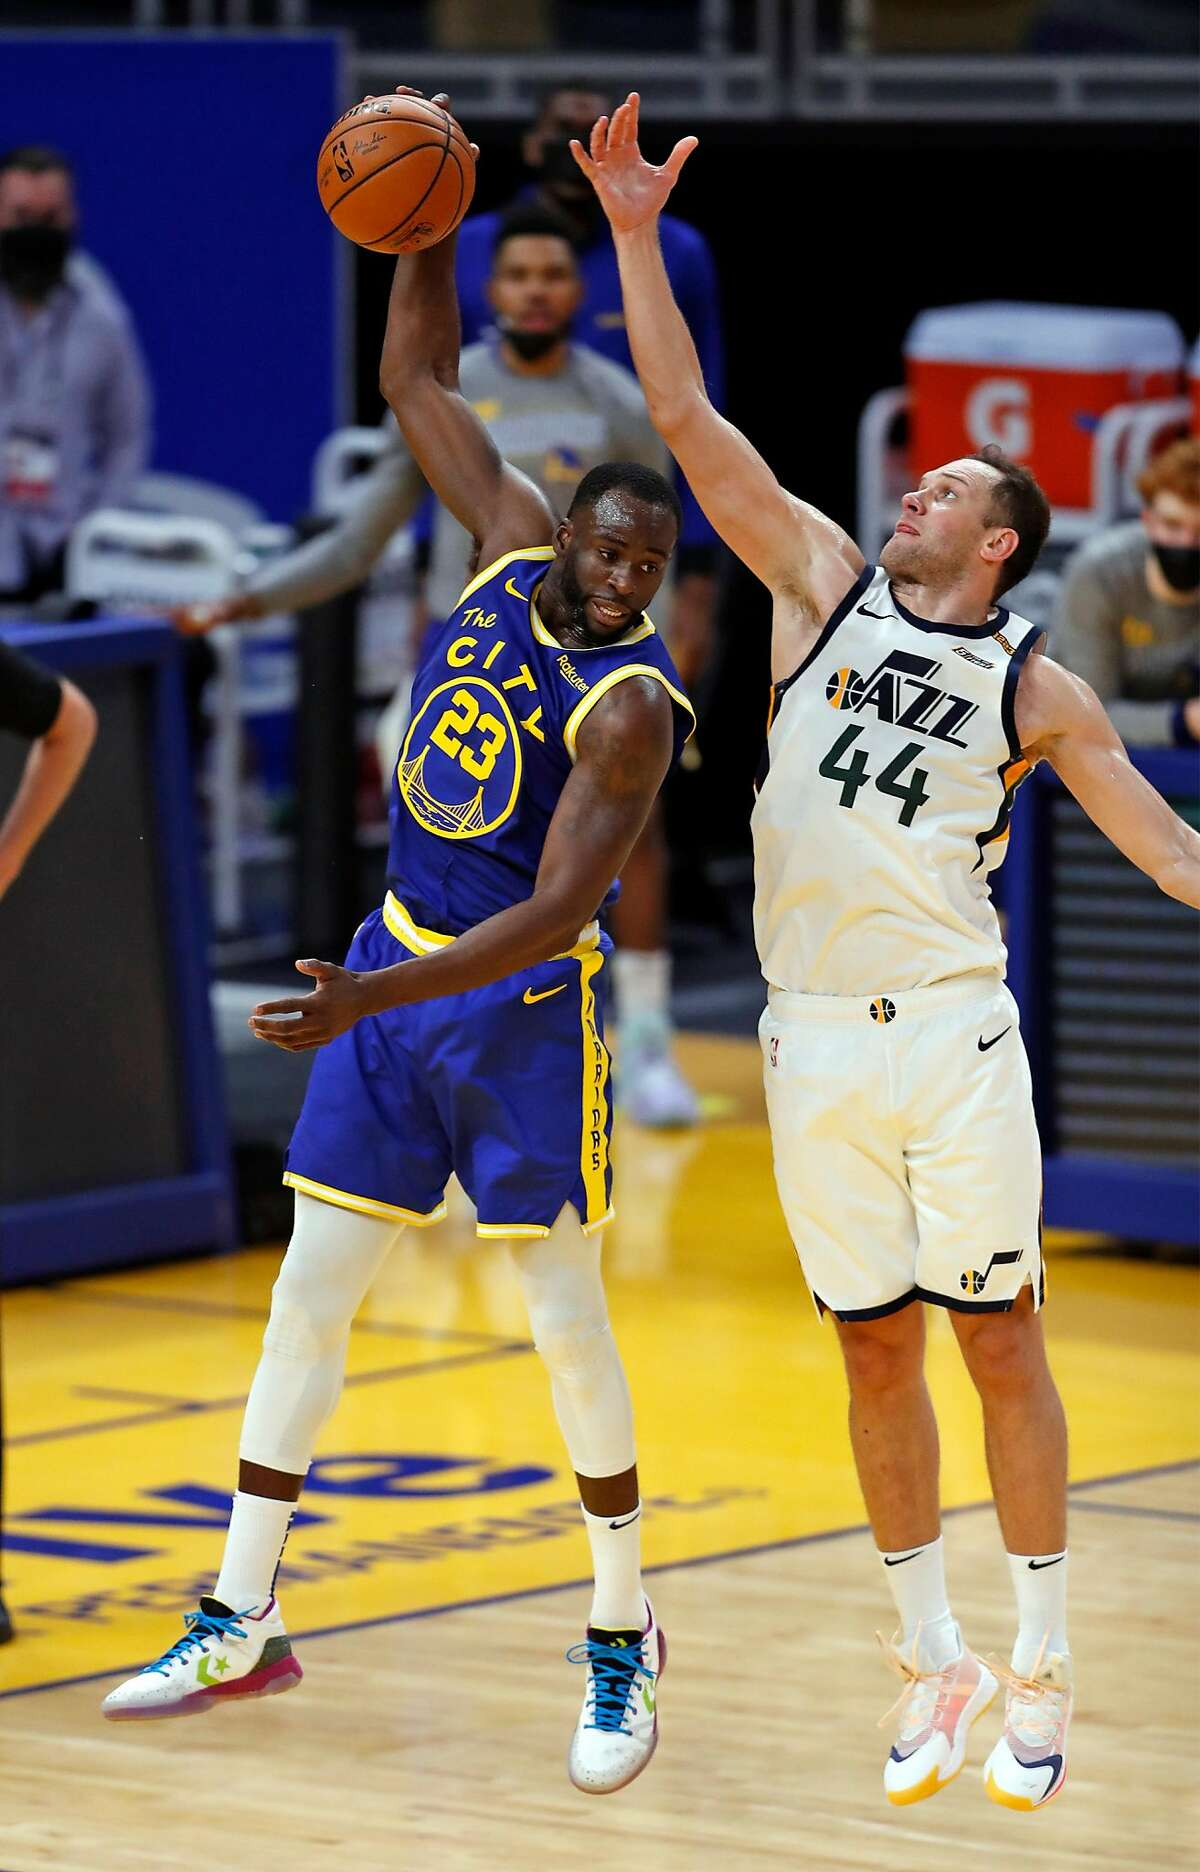 Golden State Warriors' Draymond Green out rebounds Utah Jazz' Bojan Bogdanovic� in 2nd quarter during NBA game at Chase Center in San Francisco, Calif., on Sunday, March 14, 2021.